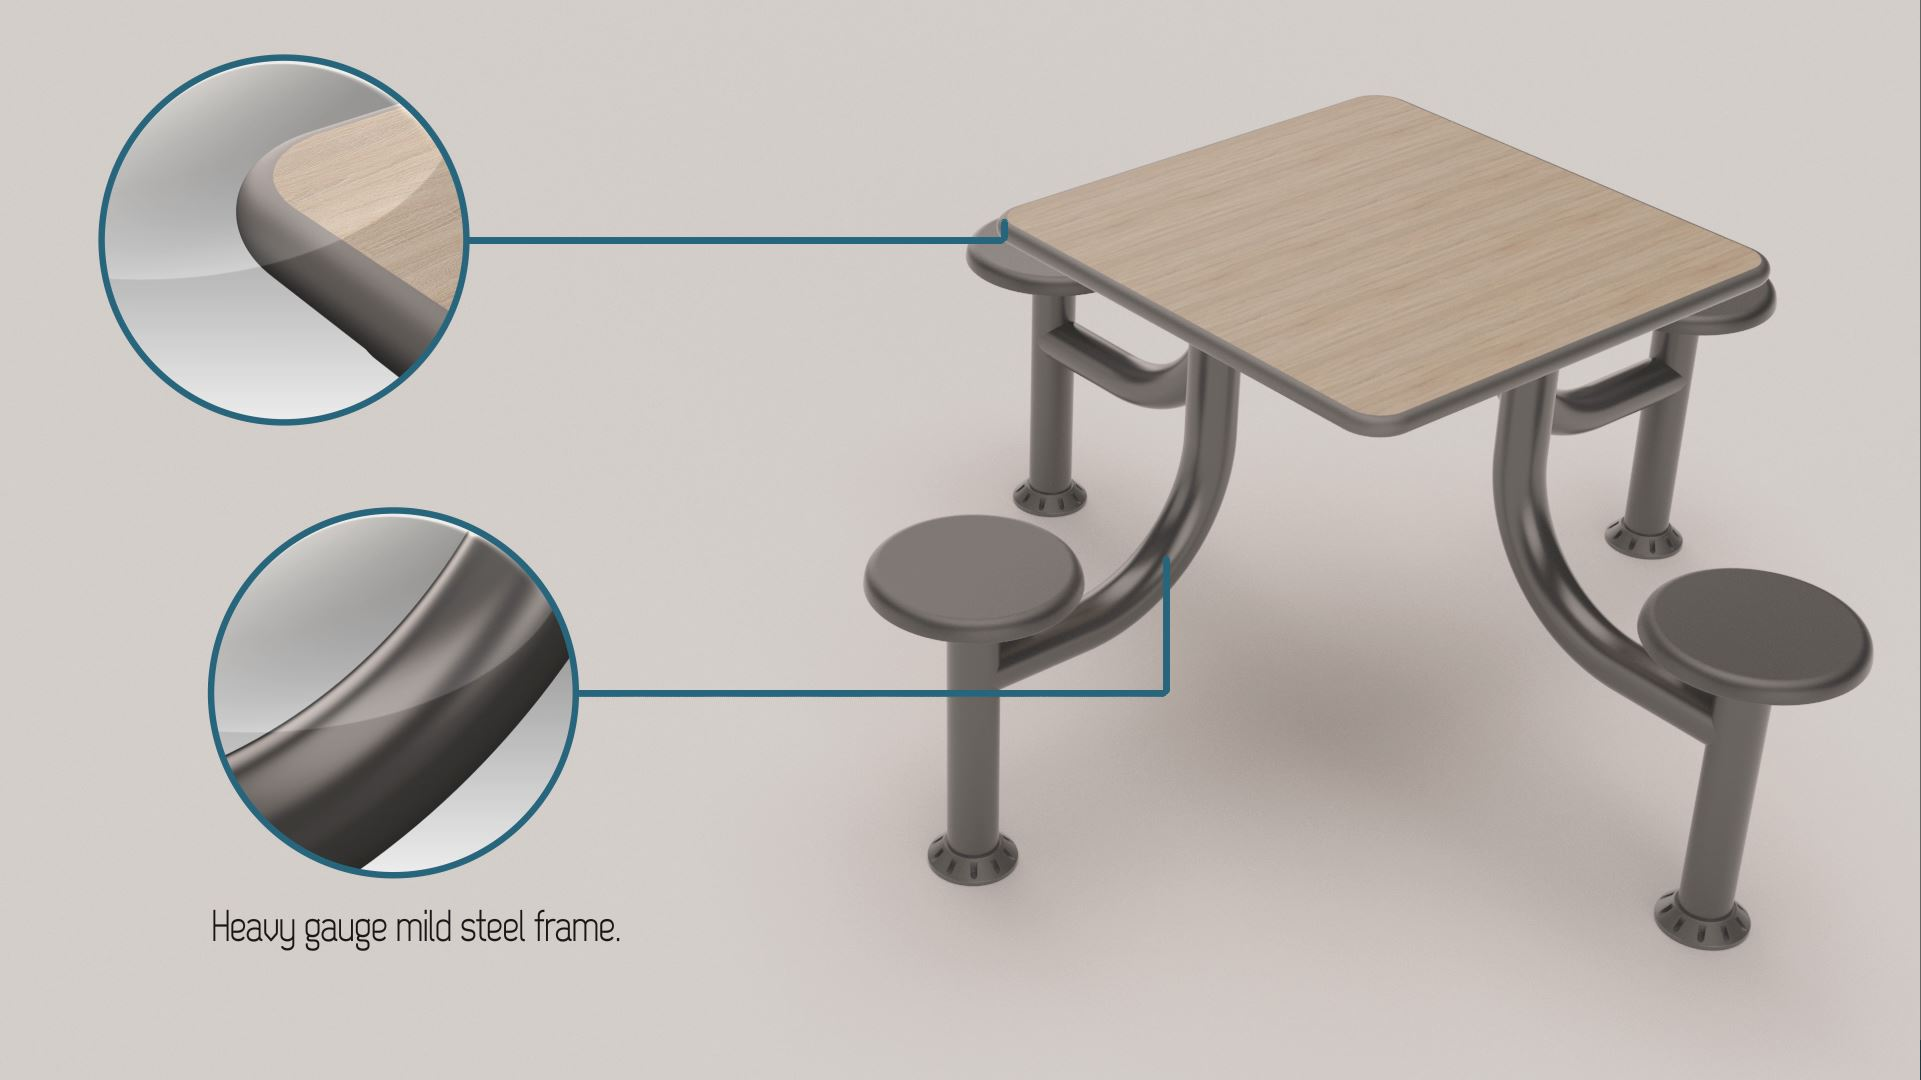 3D Rendering of a steel 4 seater square cranium table